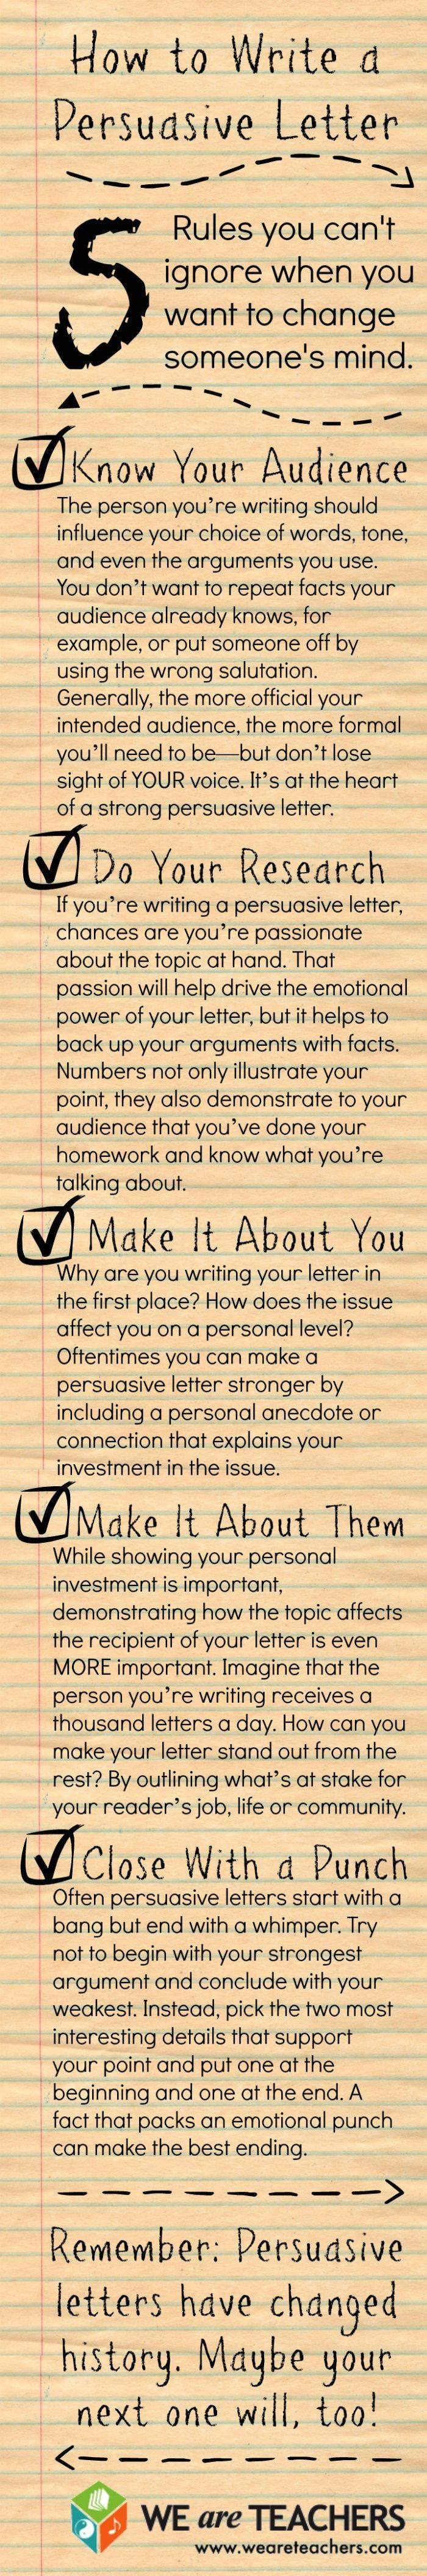 Persuasive Letter Writing Tips